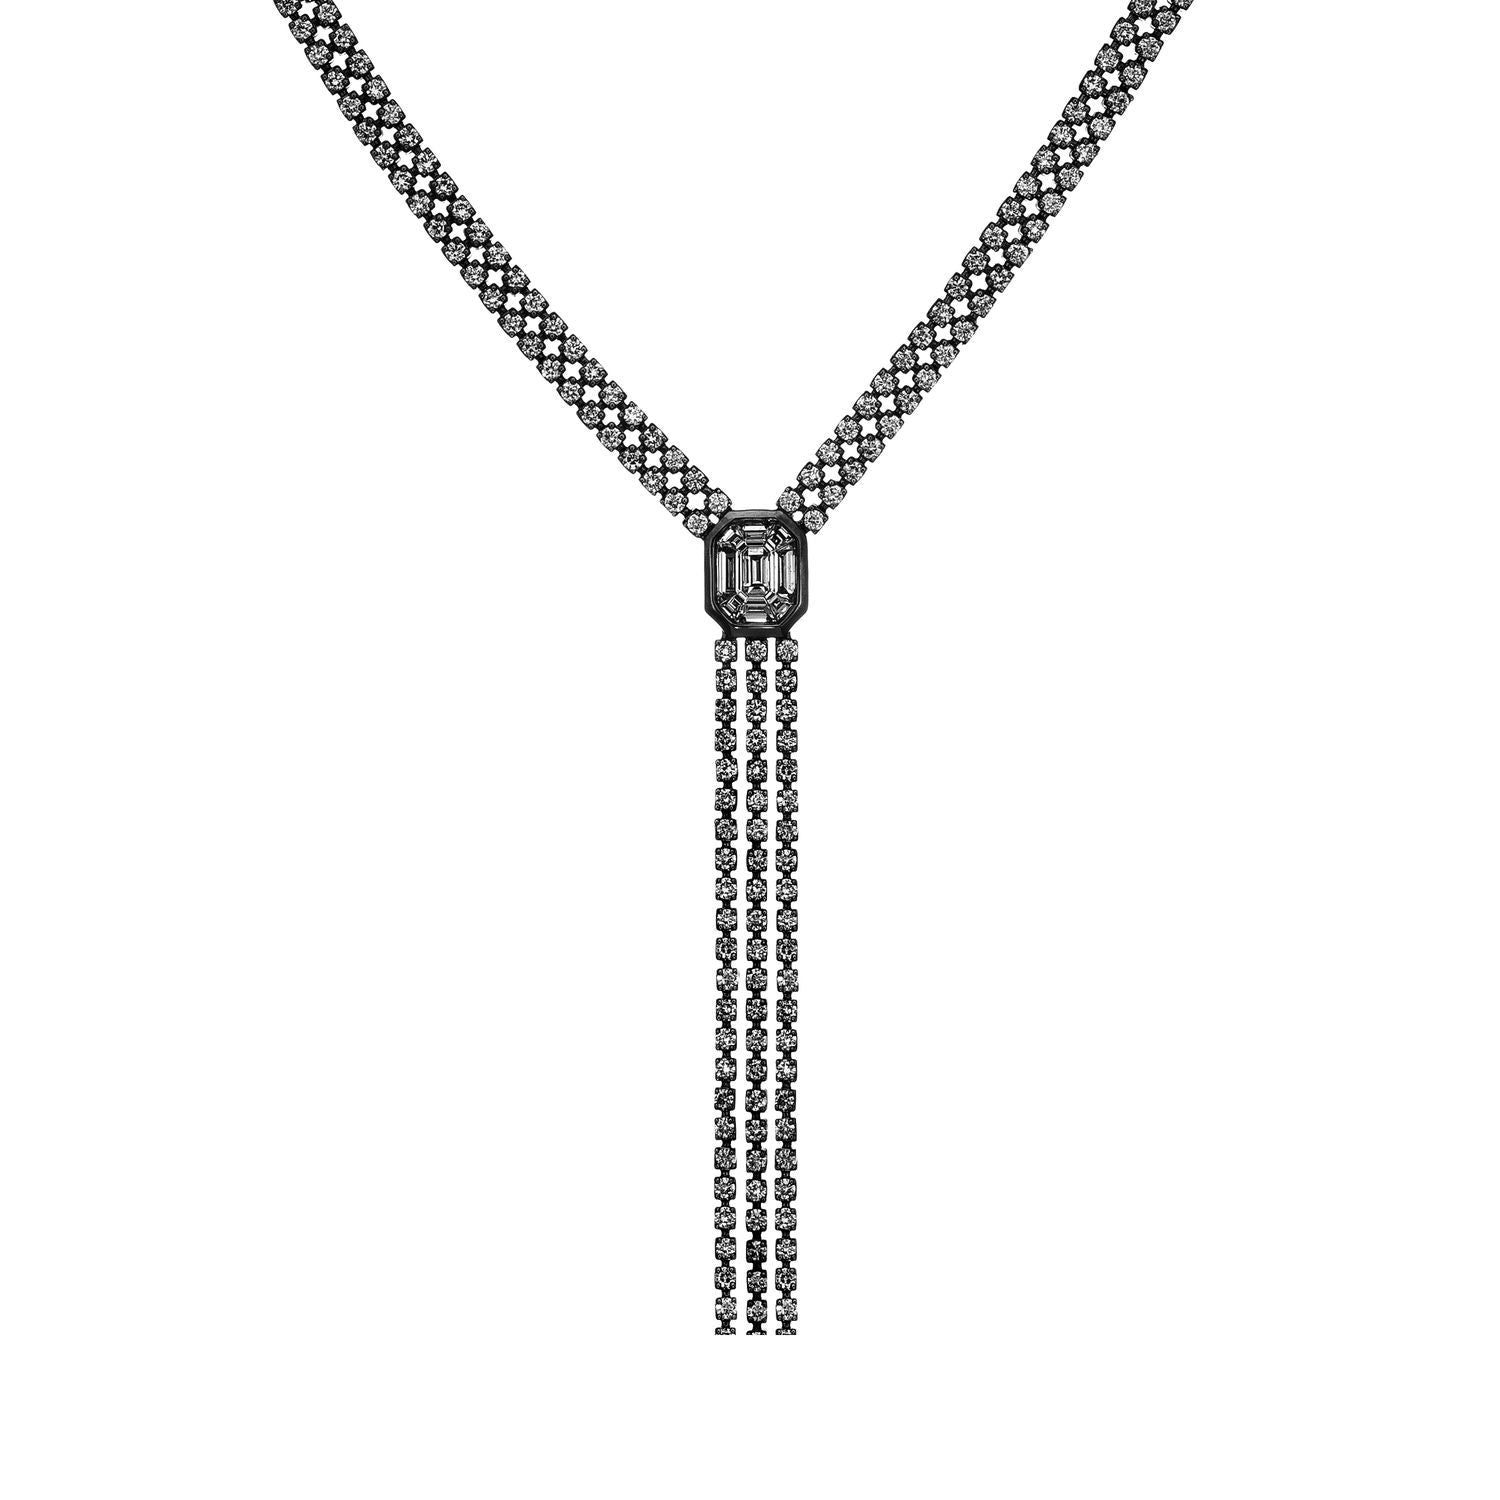 Venus Illusion Long Diamond Necklace